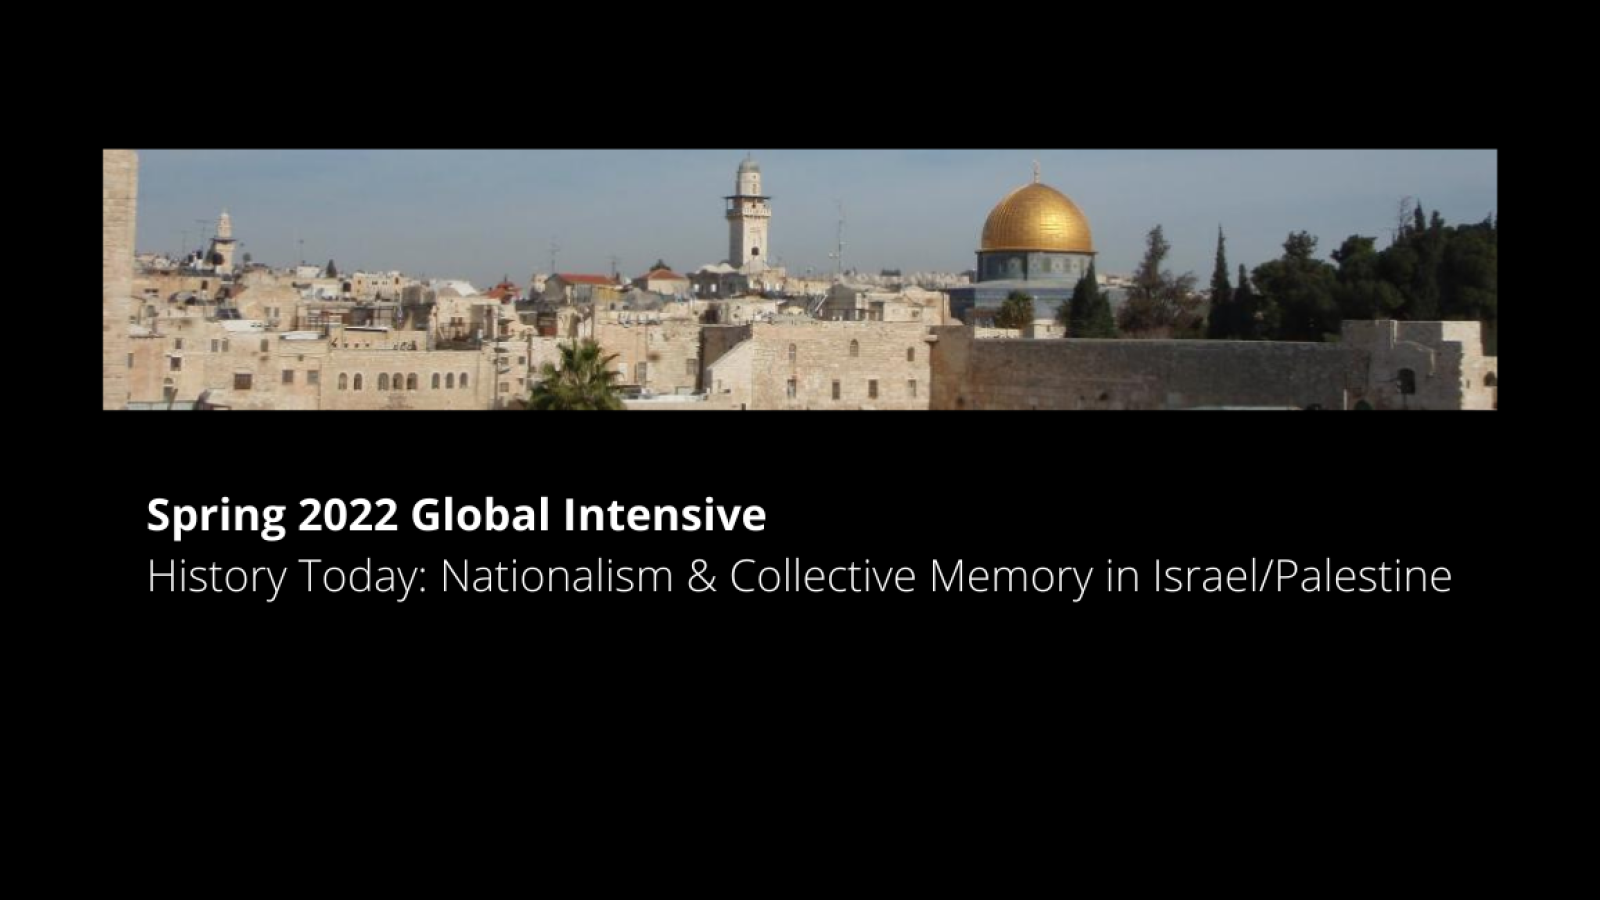 History Today: Nationalism & Collective Memory in Israel/Palestine